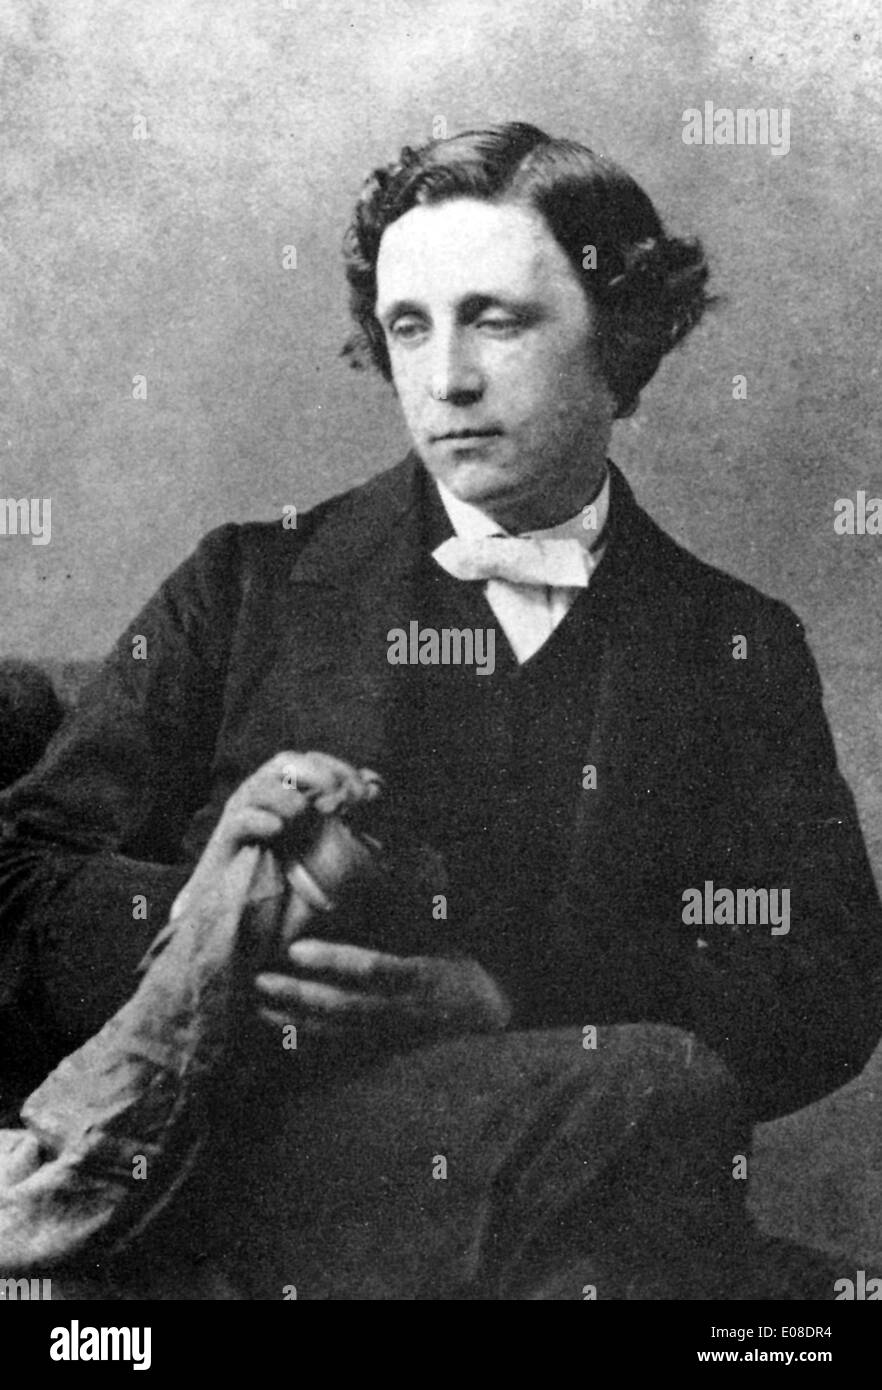 Lewis Carroll, English writer, Charles Lutwidge Dodgson, author of Alice in Wonderland - Stock Image